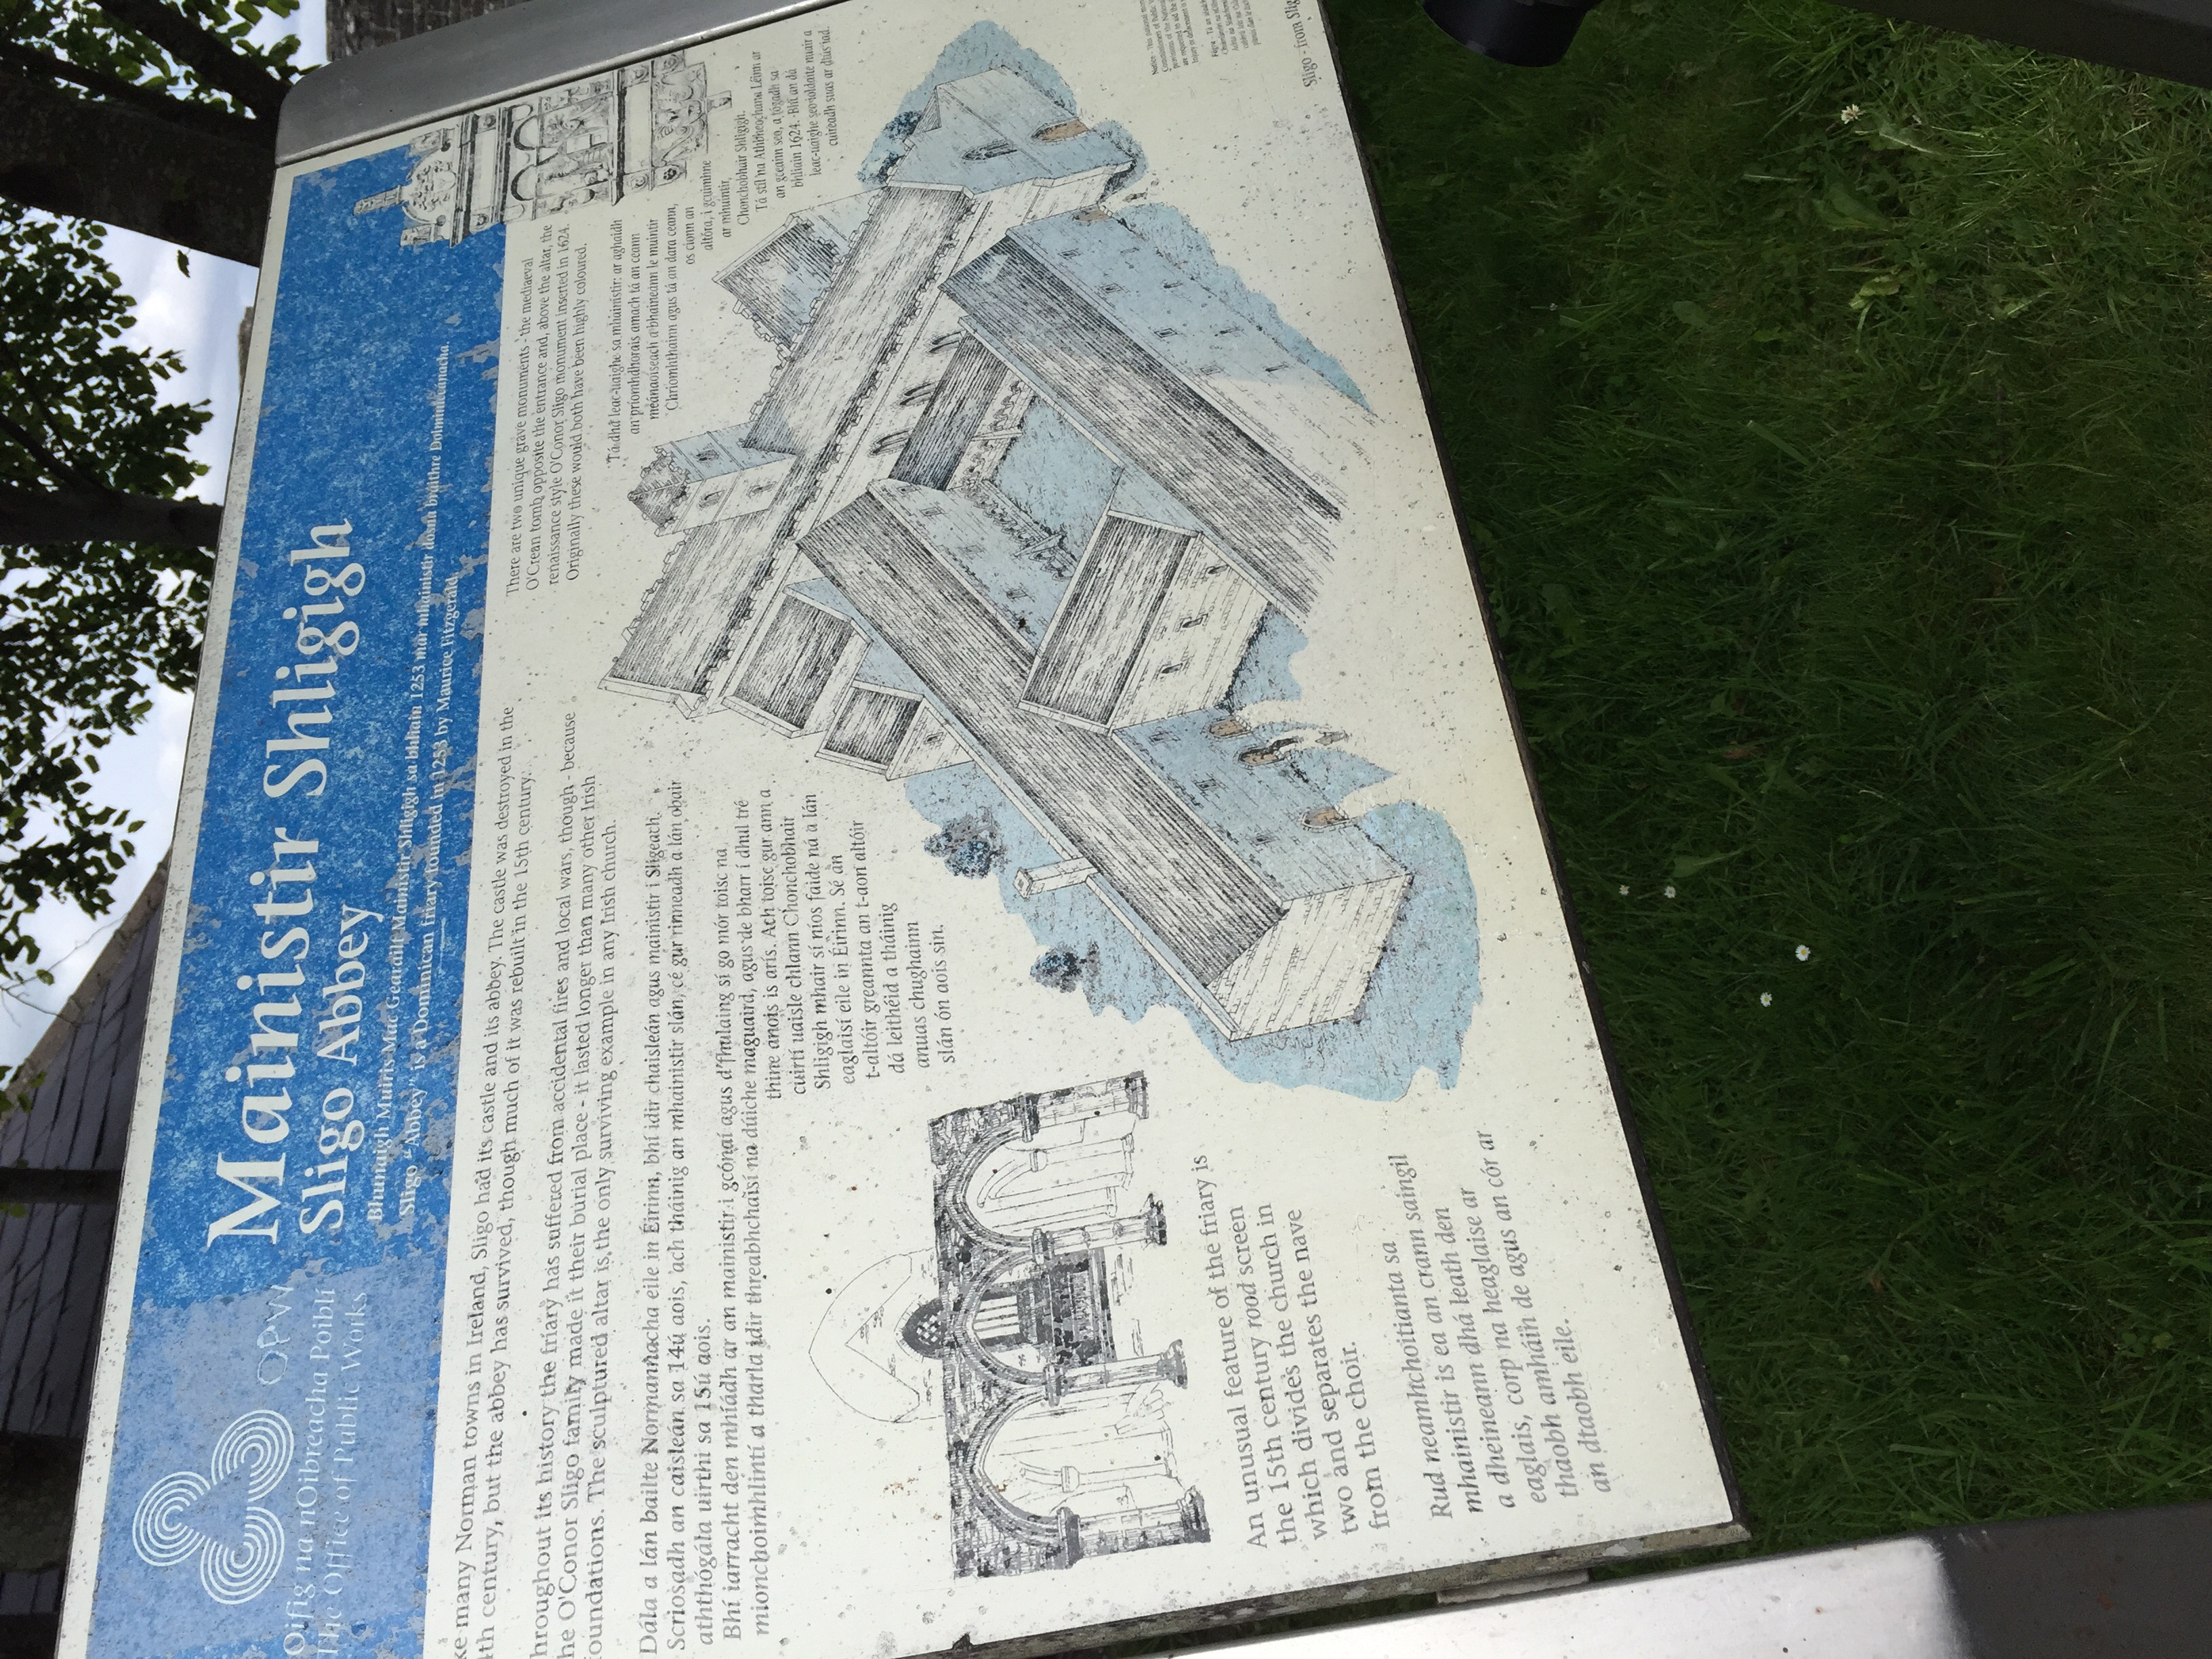 Plans of what the abbey once looked like.